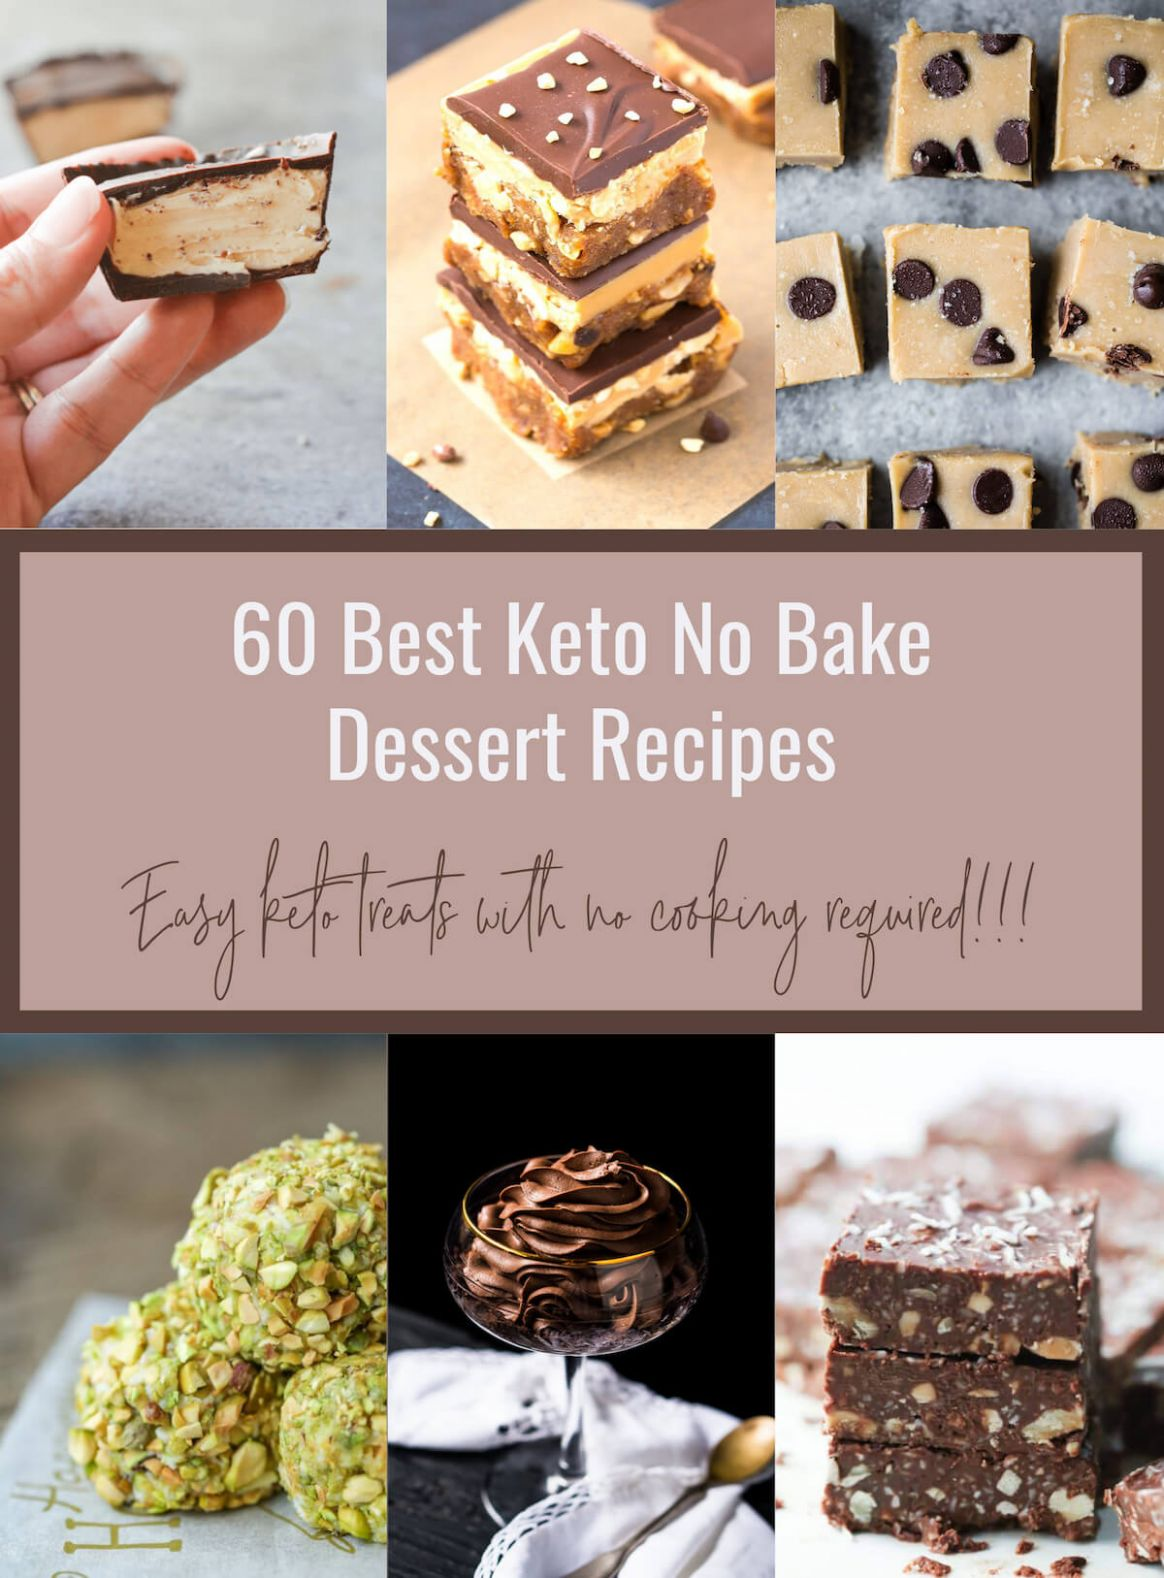 8 Best Keto No Bake Desserts - Low Carb | I Breathe I'm Hungry